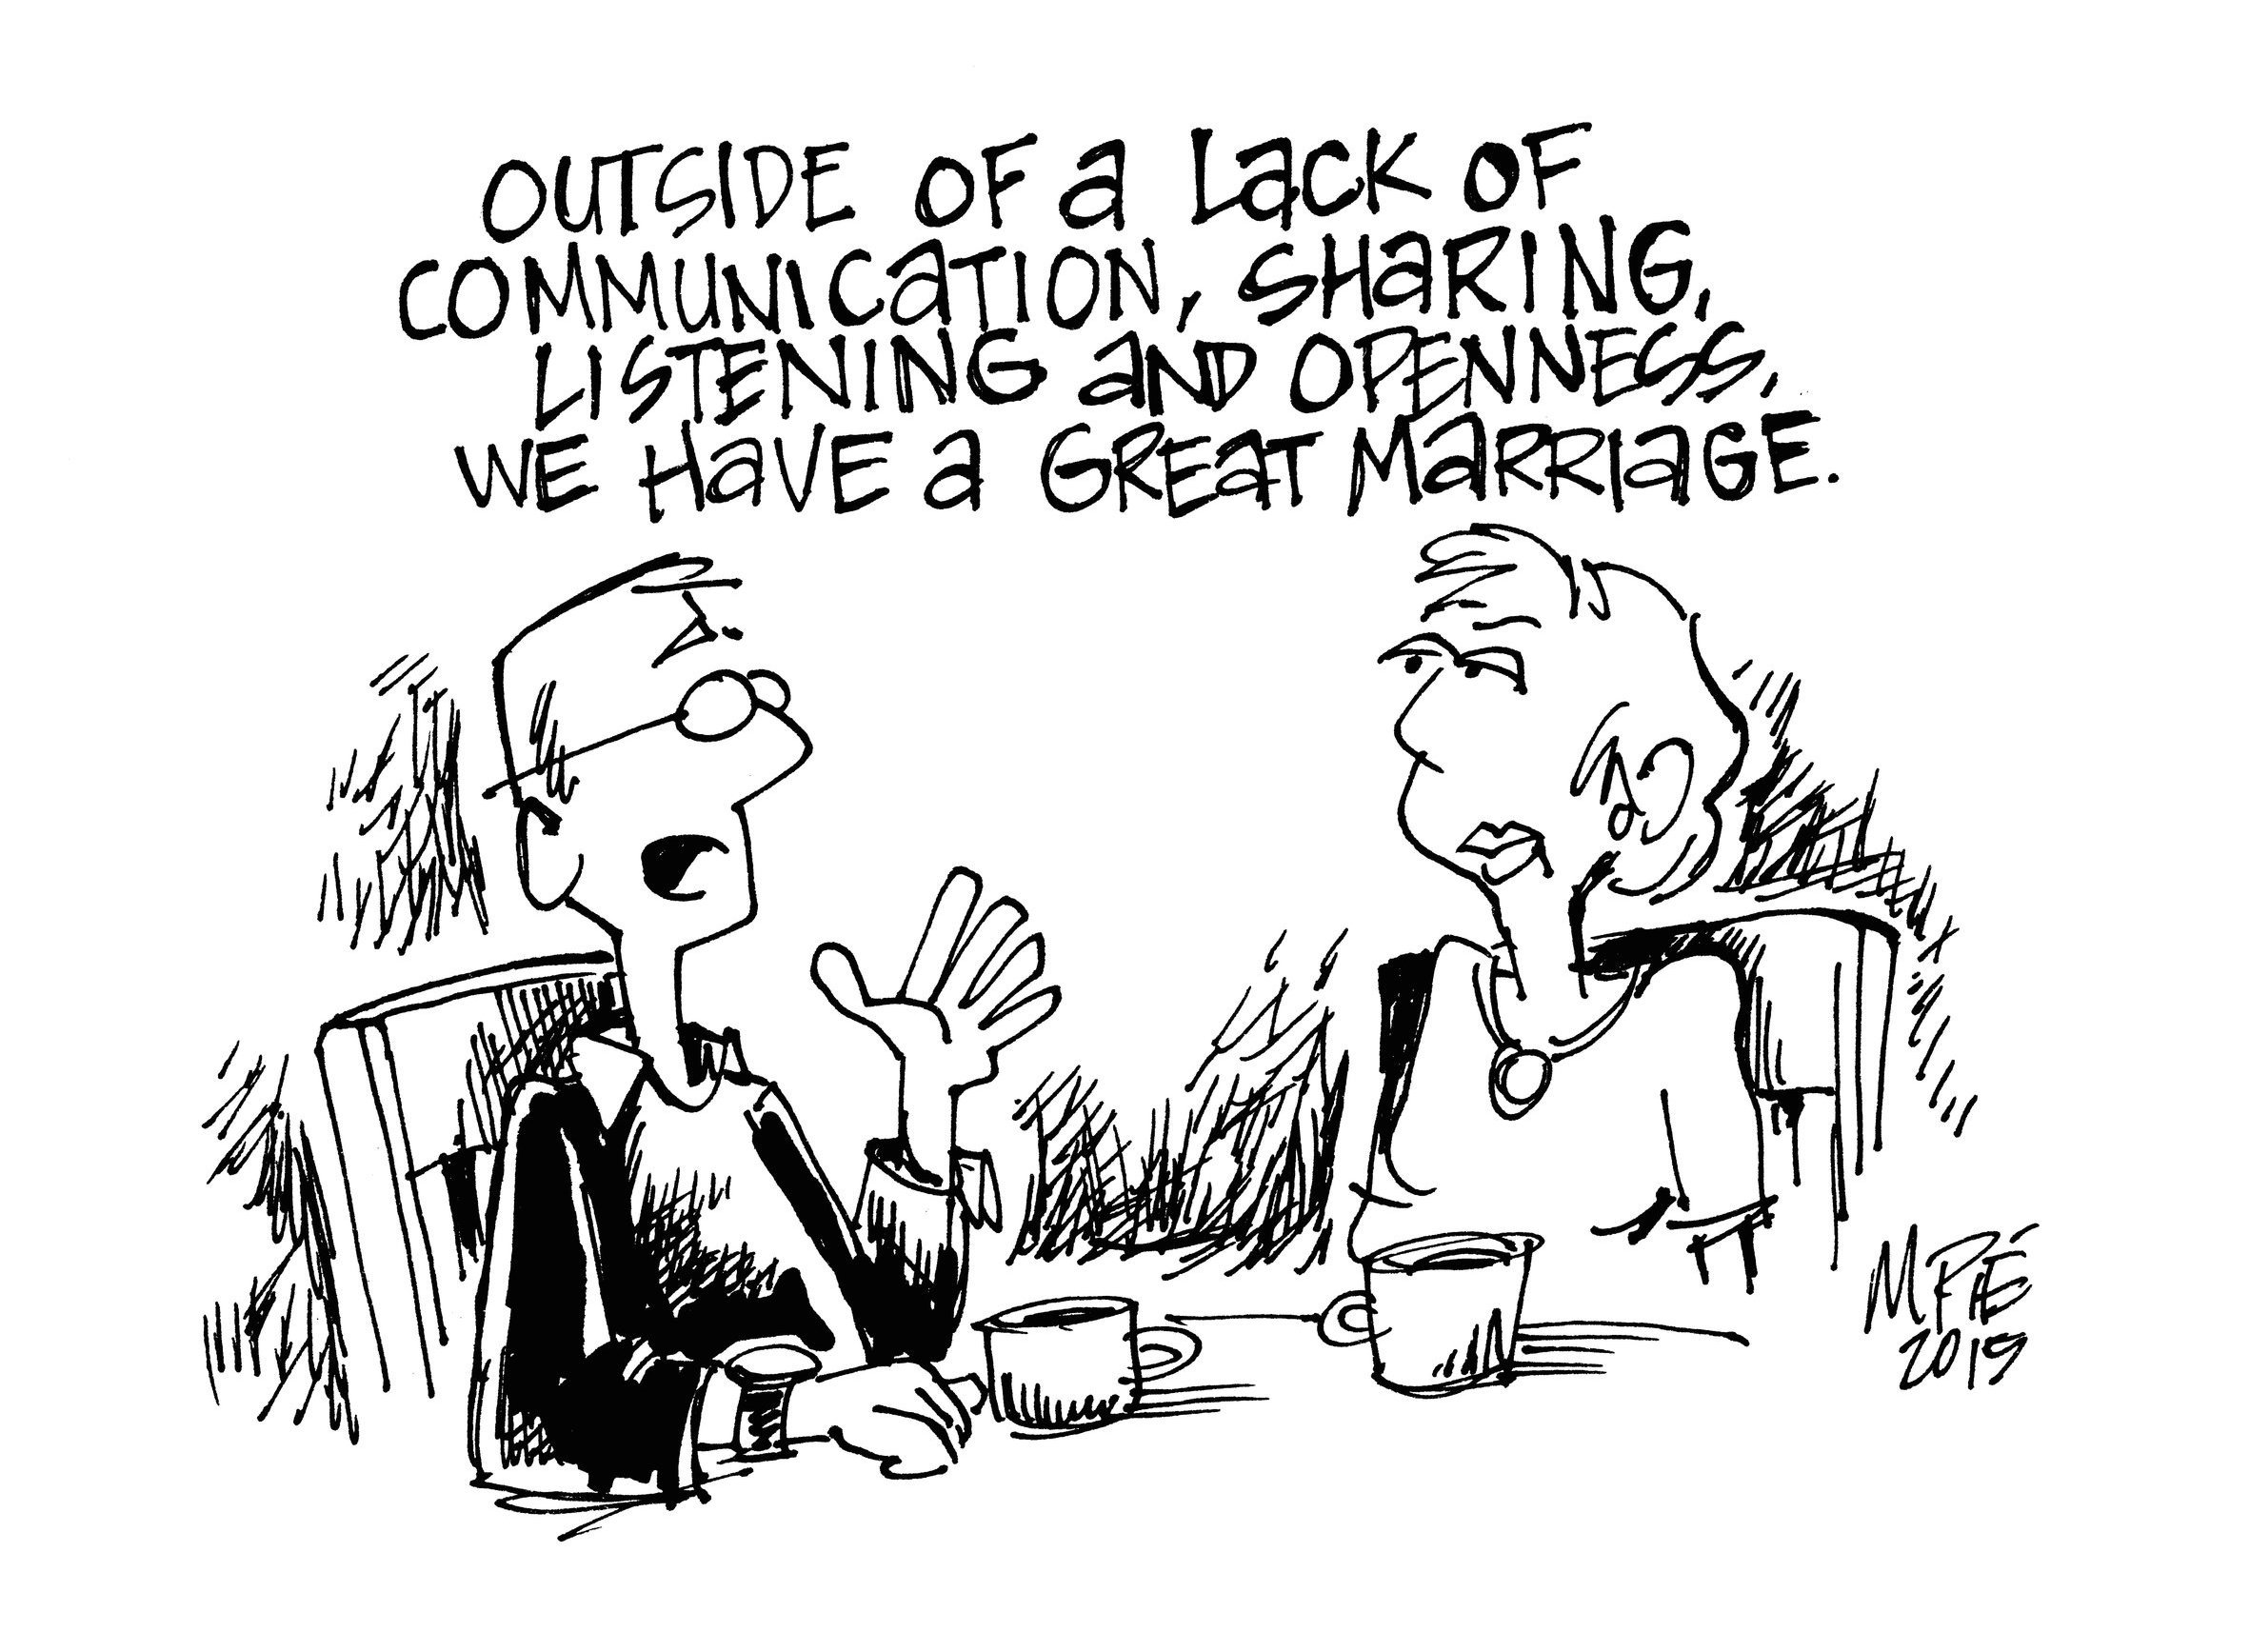 Cartoon Outside Of A Lack Communication Listening Sharing And Communicating